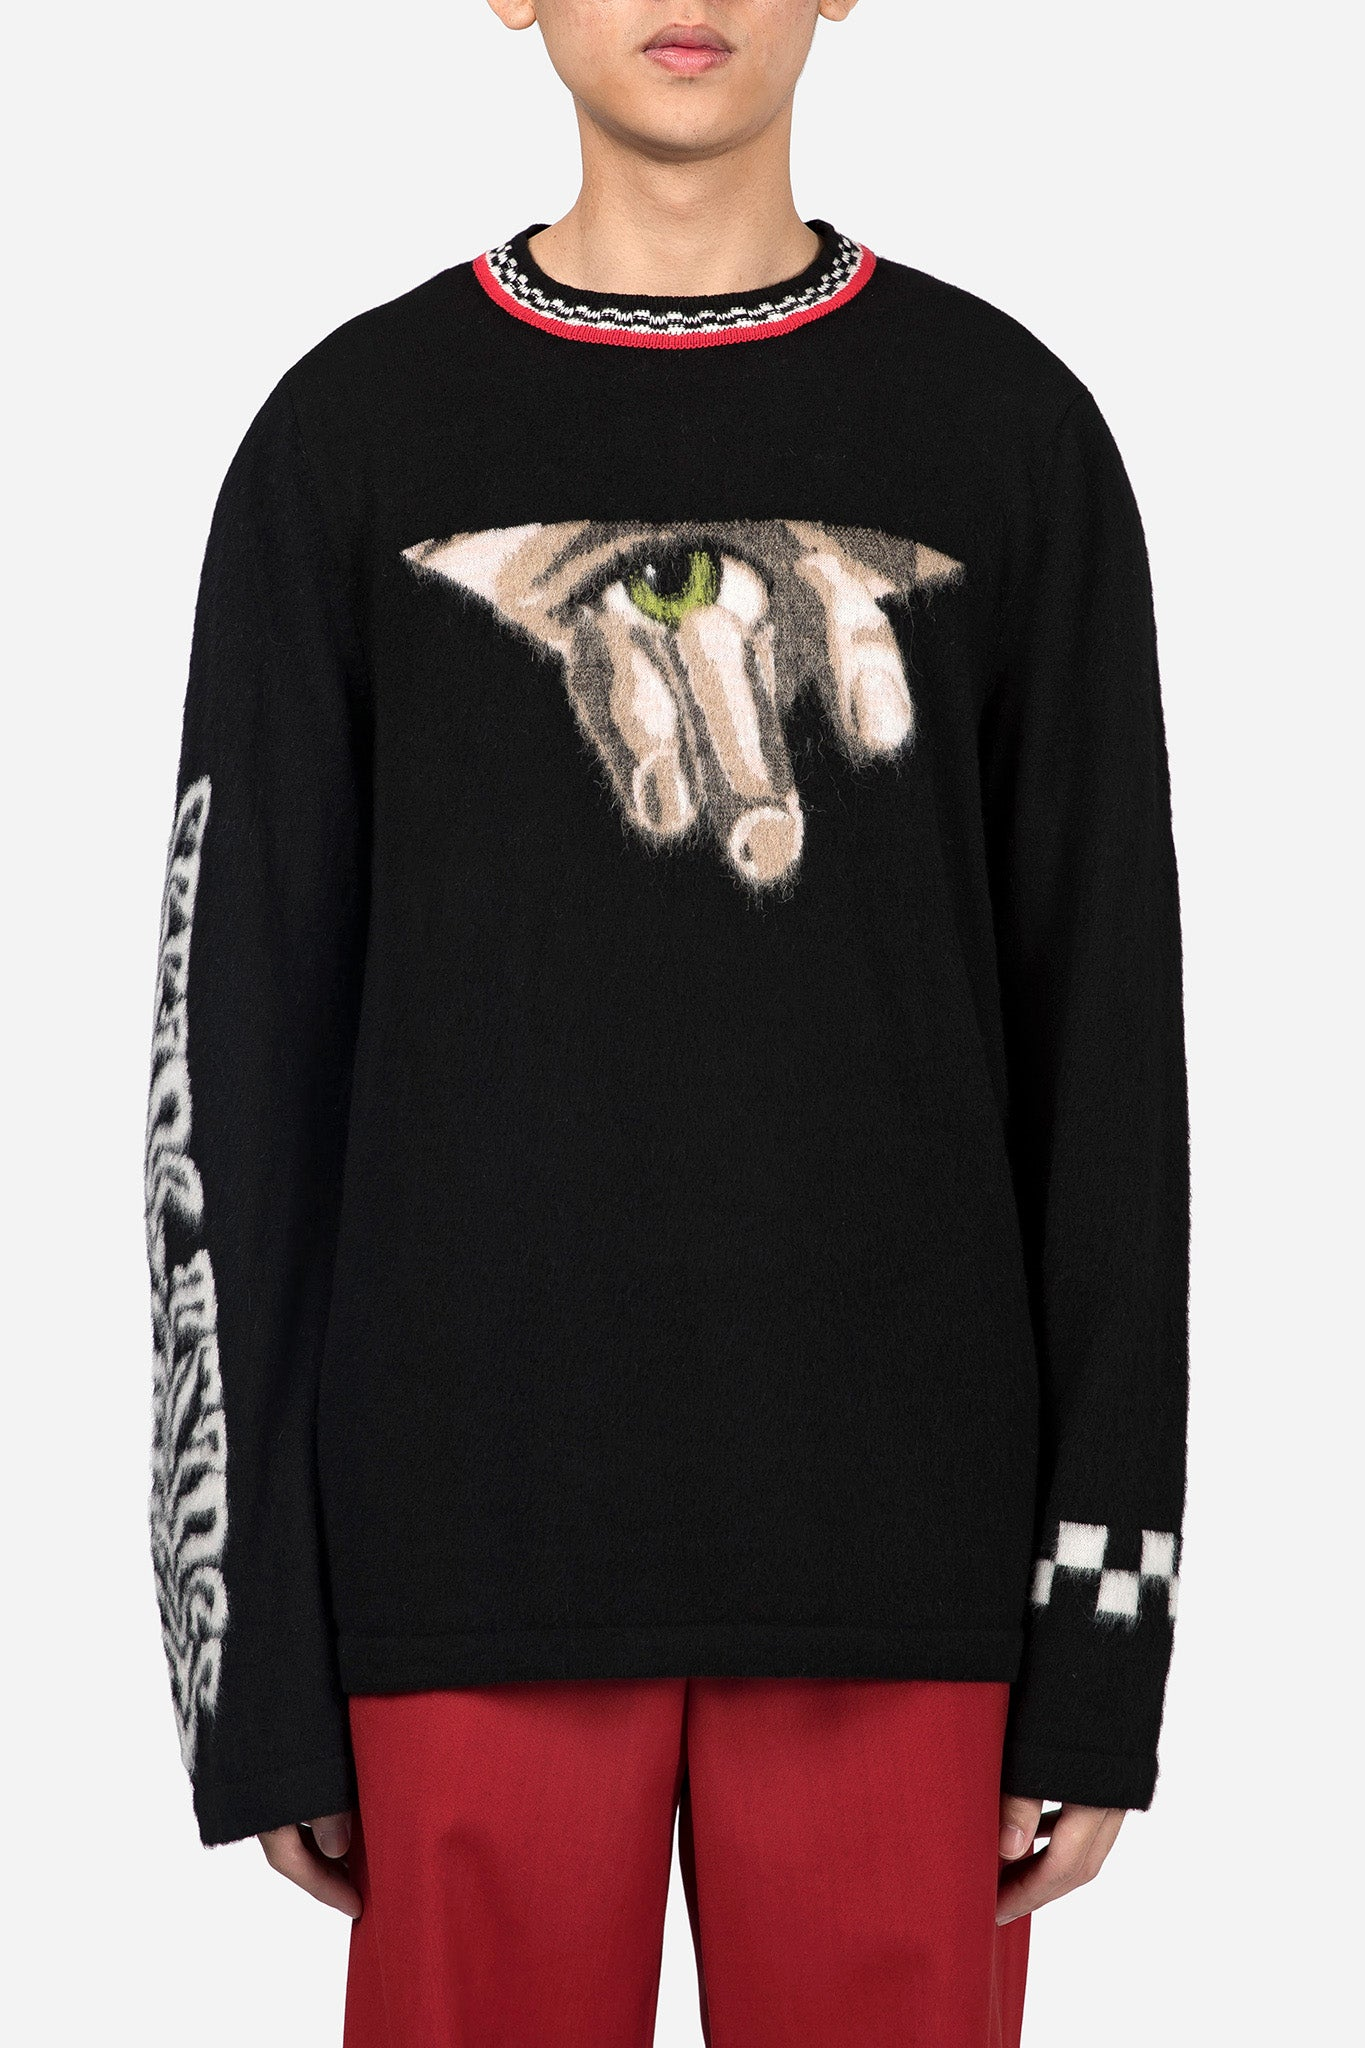 038ecf337caf Seeing Things Pullover Black Multicolor - Off-White